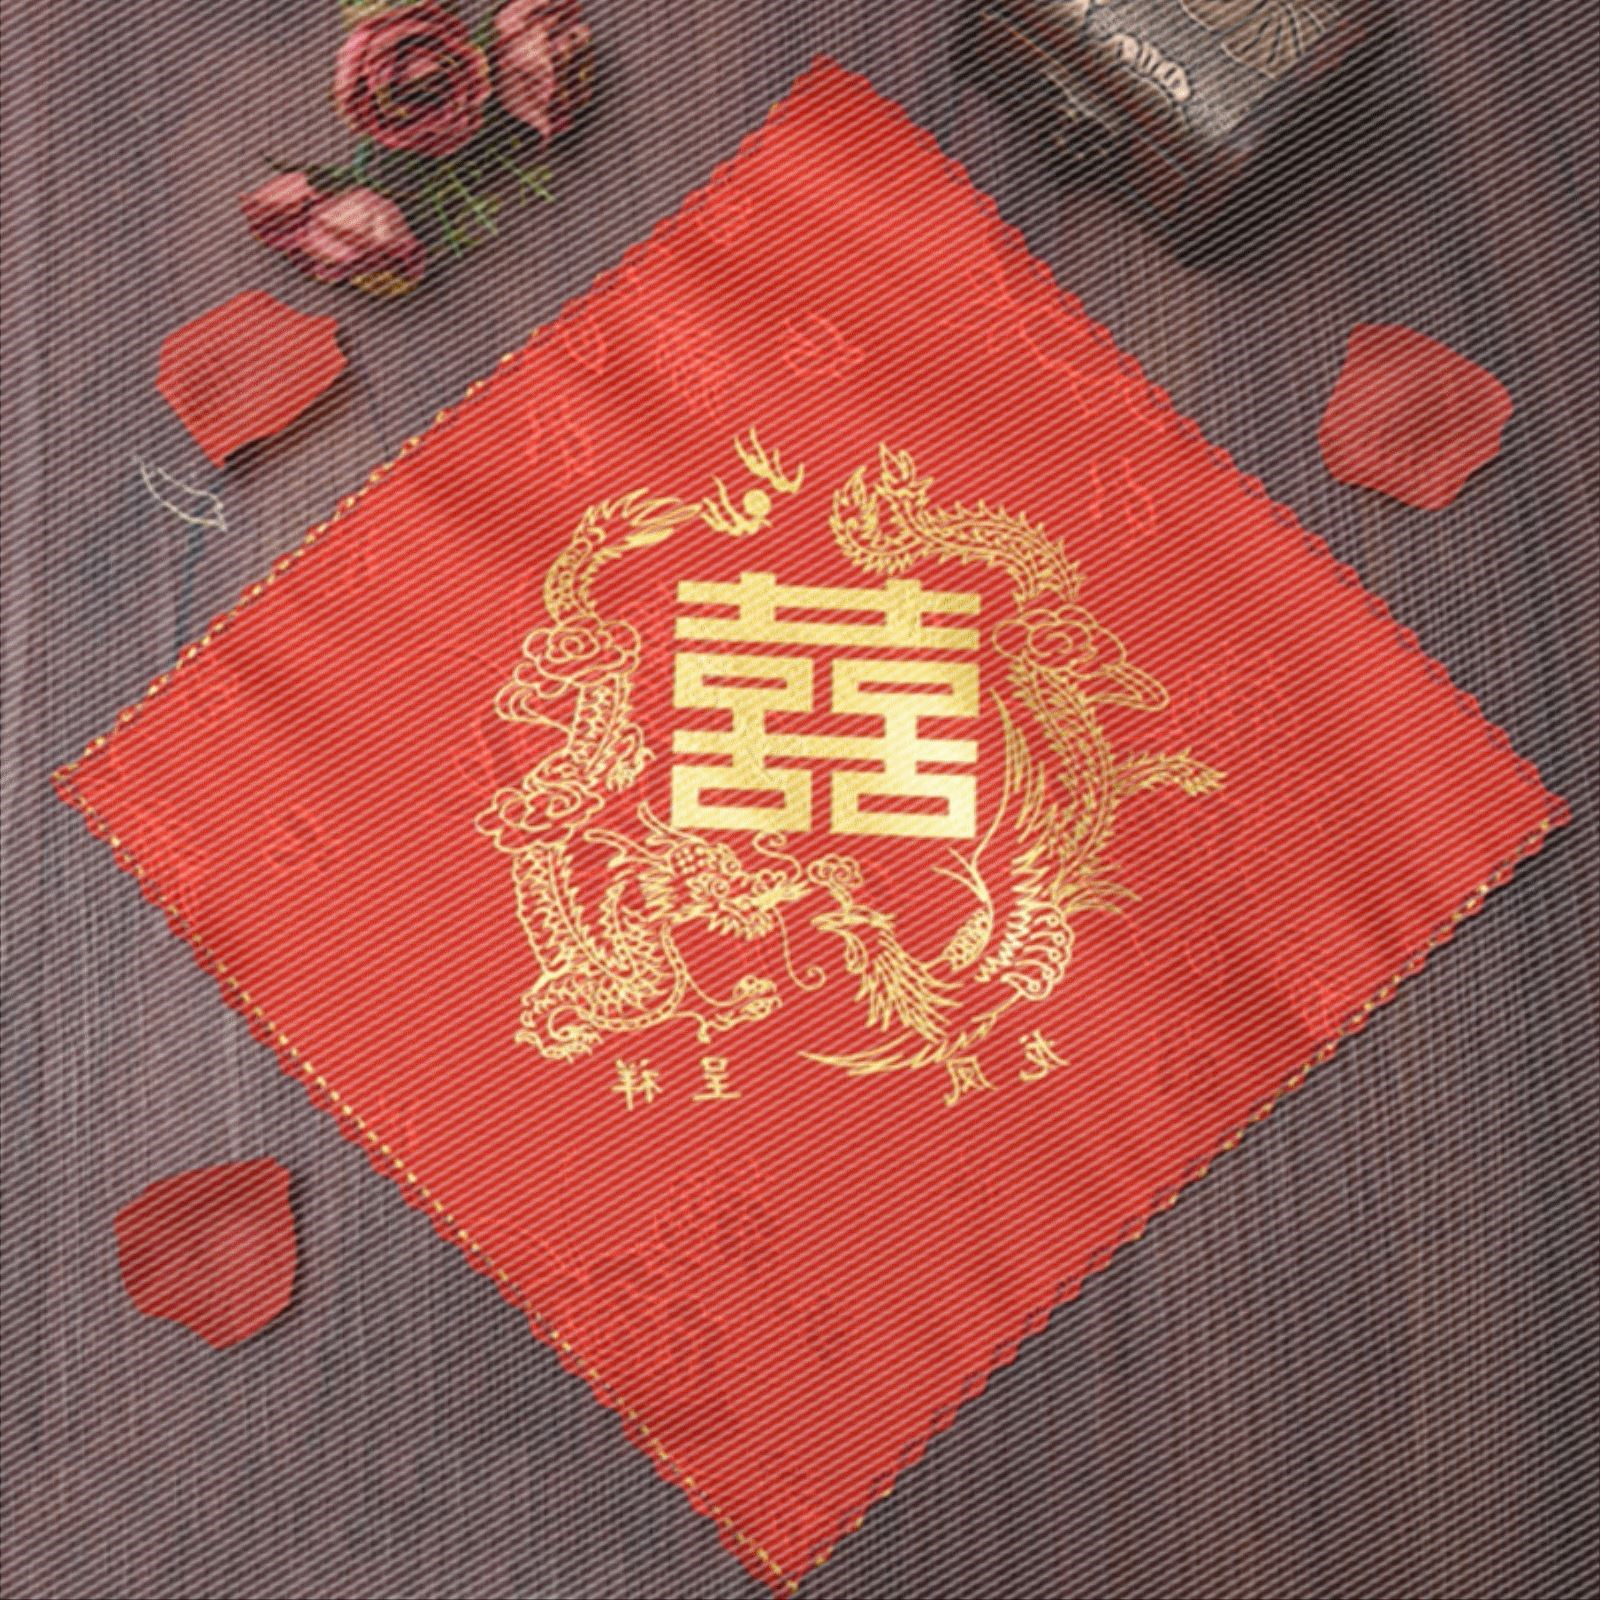 Restoring ancient ways of people use red like a handkerchief or handkerchief pocket handkerchief red square knot wedding festival supplies new bride